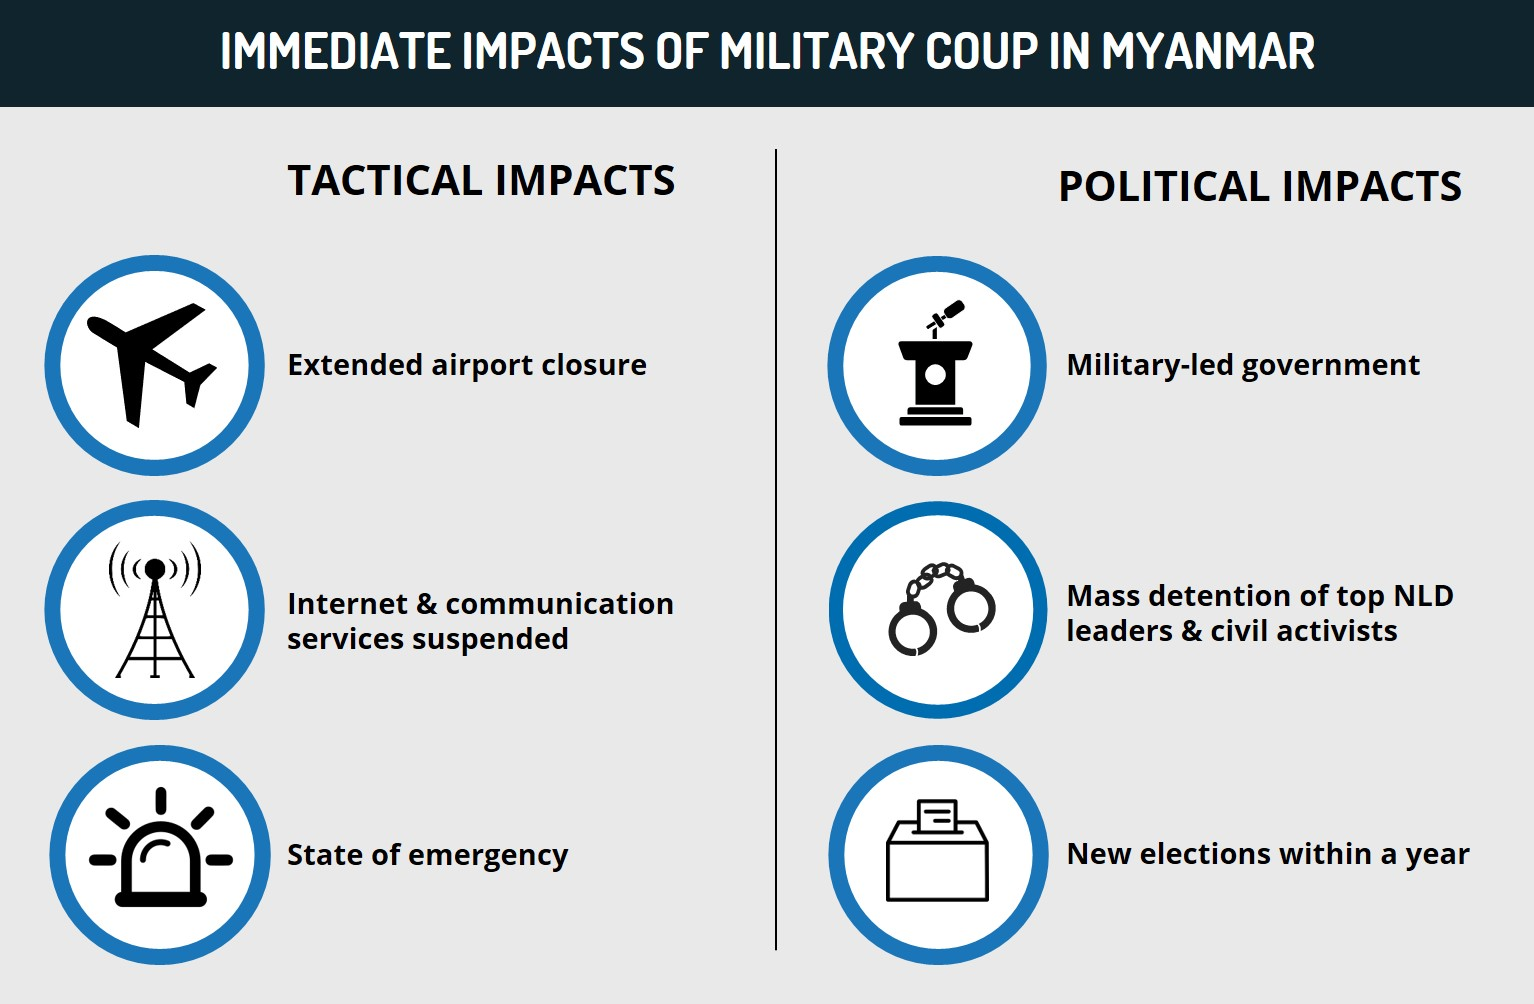 Tatmadaw pledges to hold elections in one year as NLD calls on supporters to protest coup; avoid all travel - Myanmar Situation Update